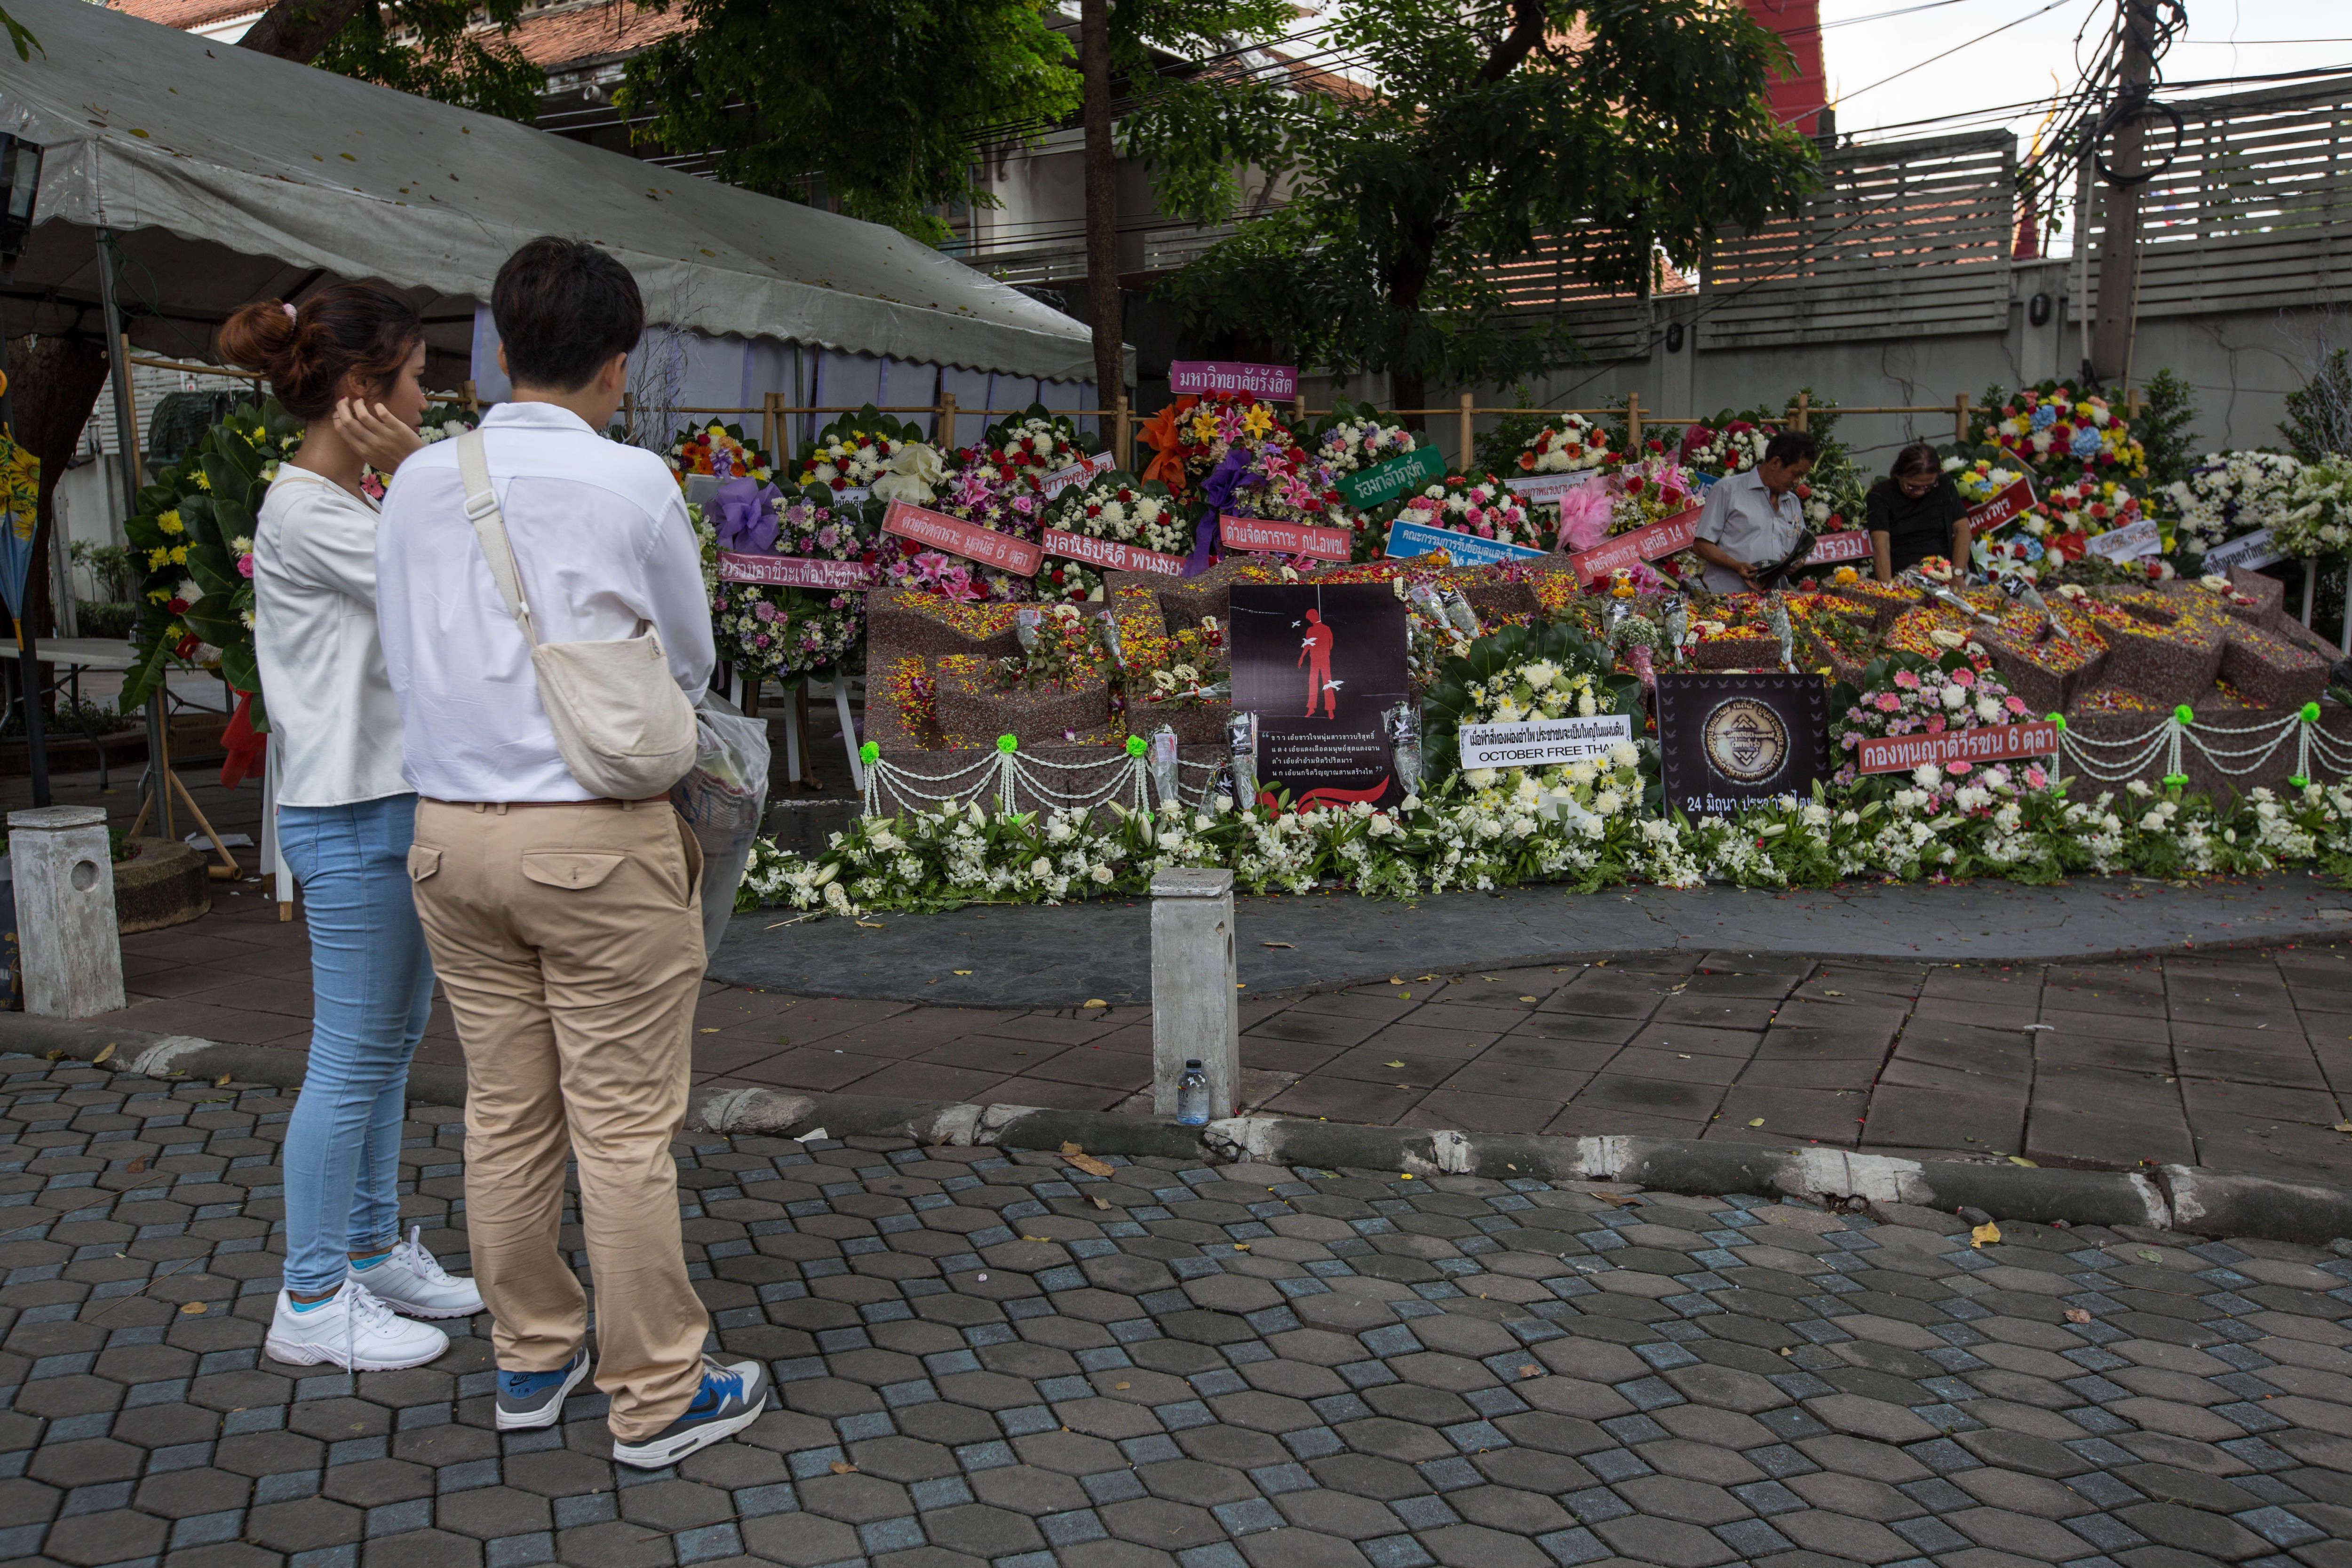 People visit the 40th anniversary memorial inside Thammasat University Campus on Oct. 6, 2016, as Thailand marks the 40th anniversary of the Thammasat University massacre.